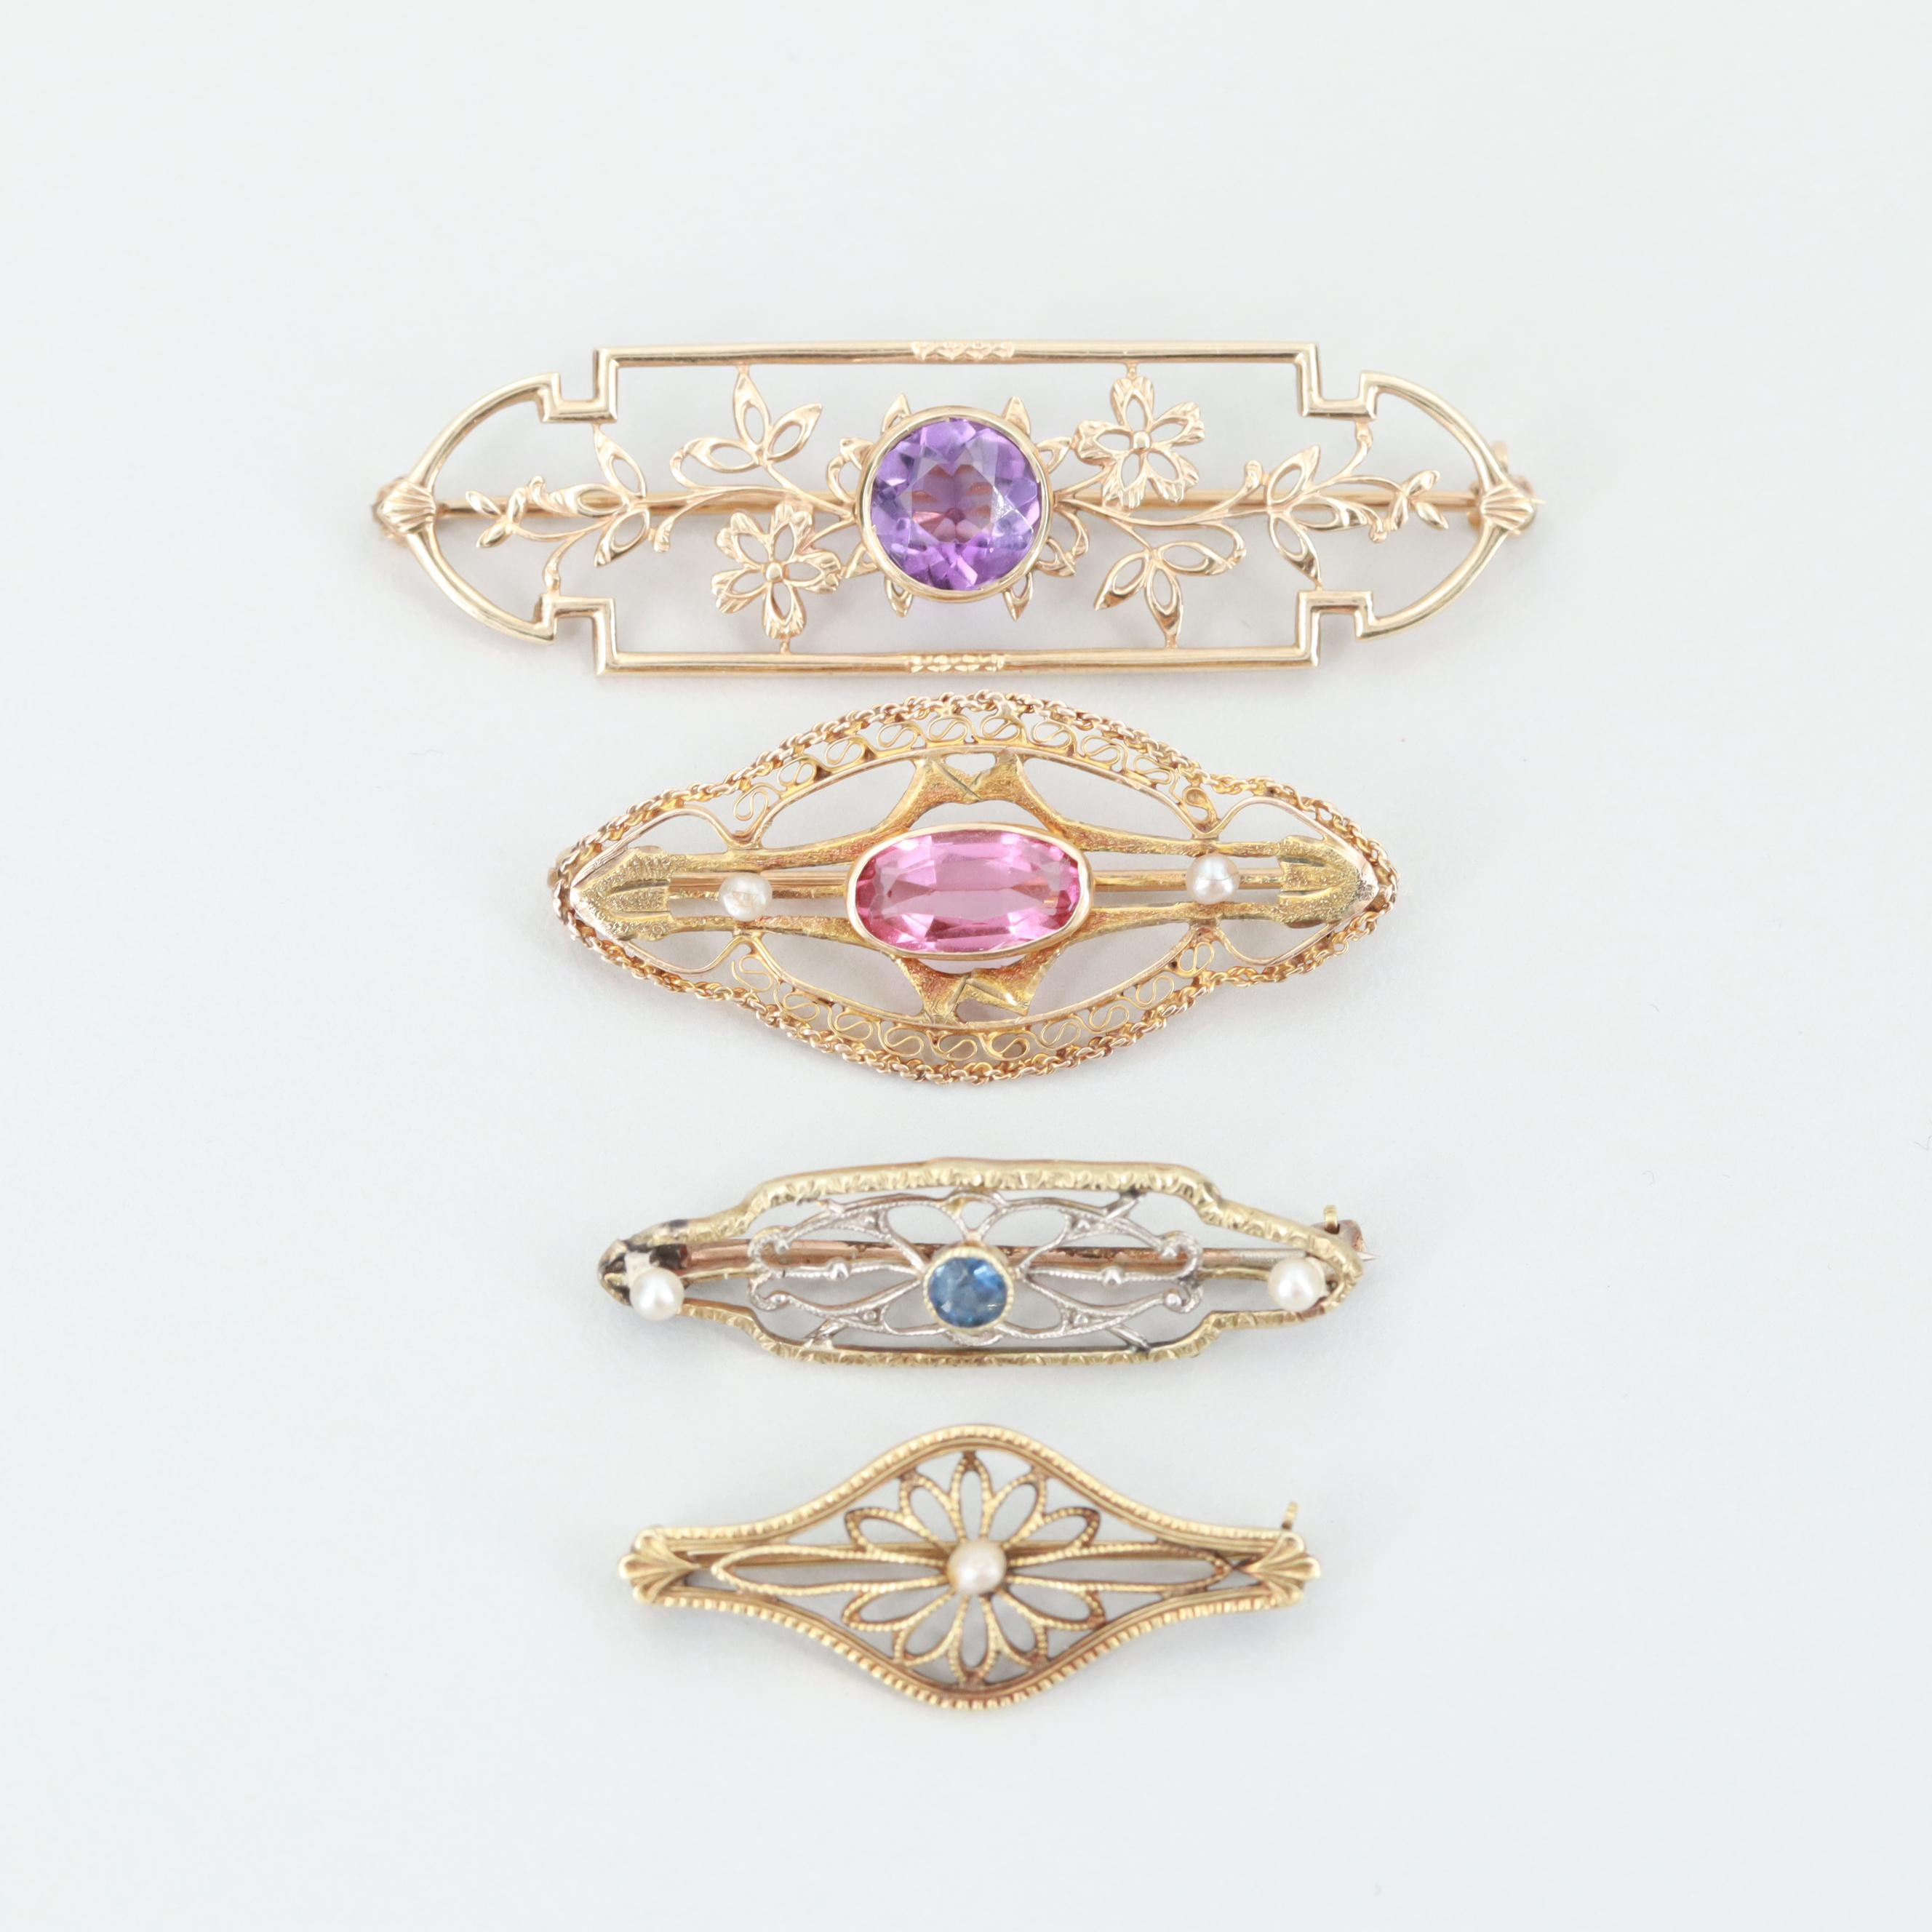 Four Vintage 10K and 14K Yellow Gold Amethyst and Gemstone Brooches